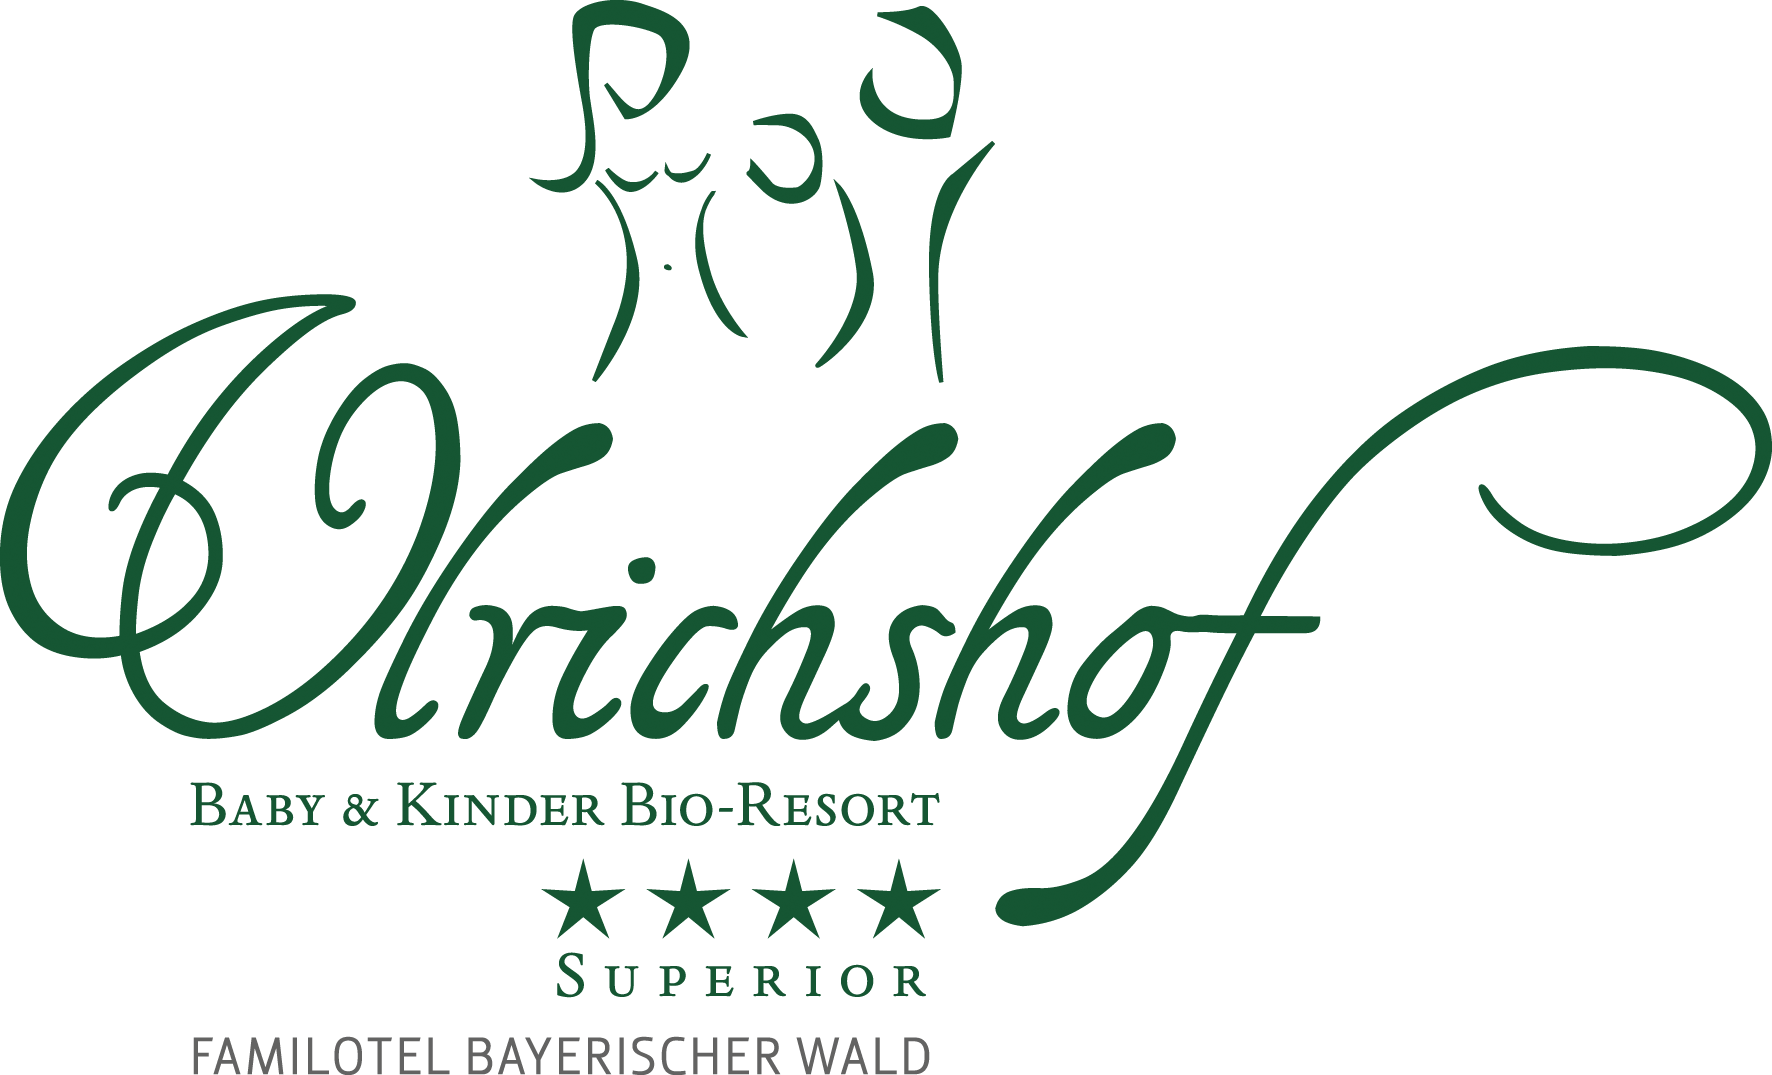 Baby & Kinder Bio-Resort ULRICHSHOF